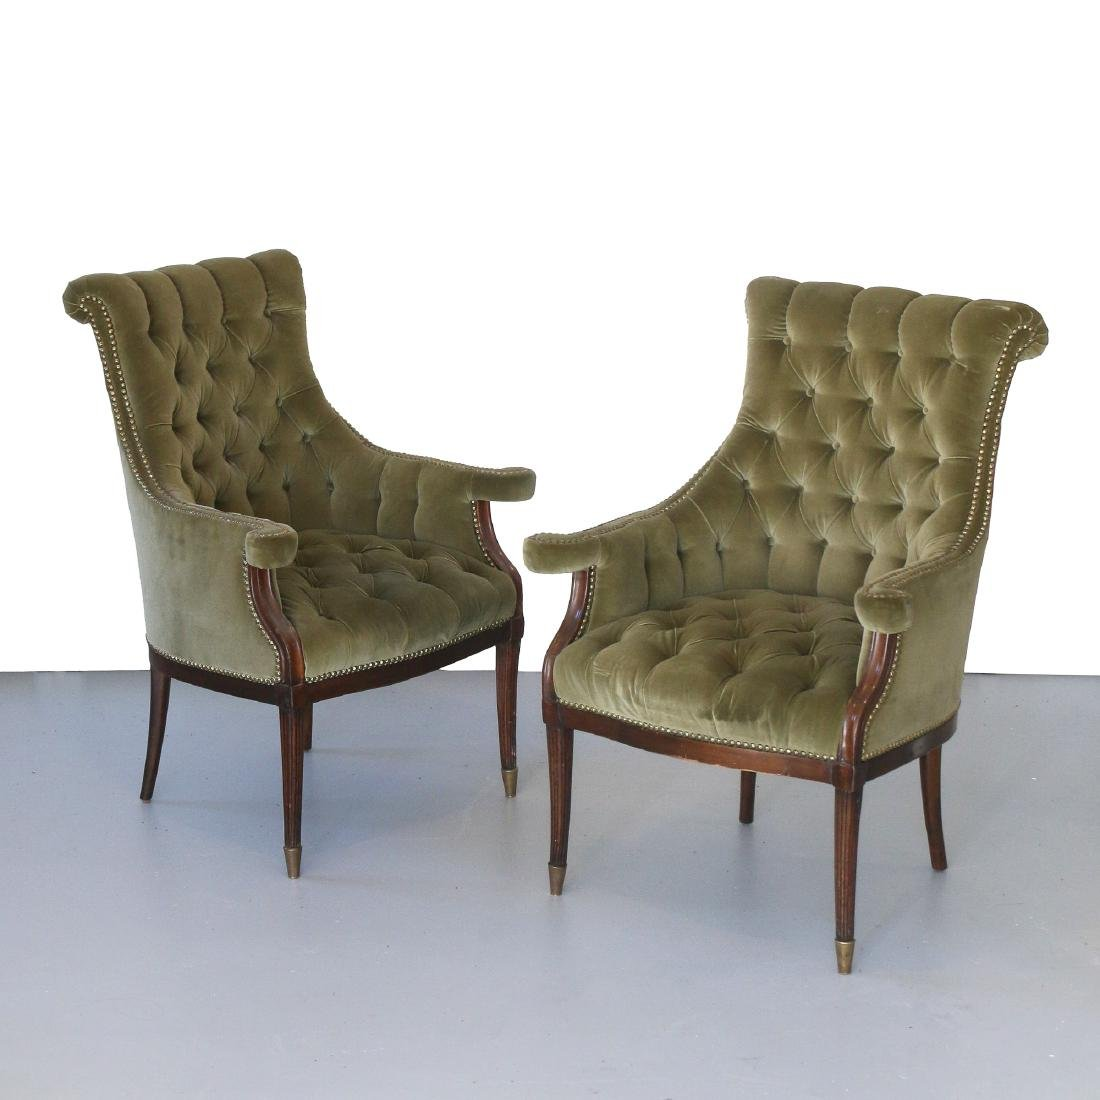 PAIR UNUSUAL ANTIQUE UPHOLSTERED ARM CHAIRS